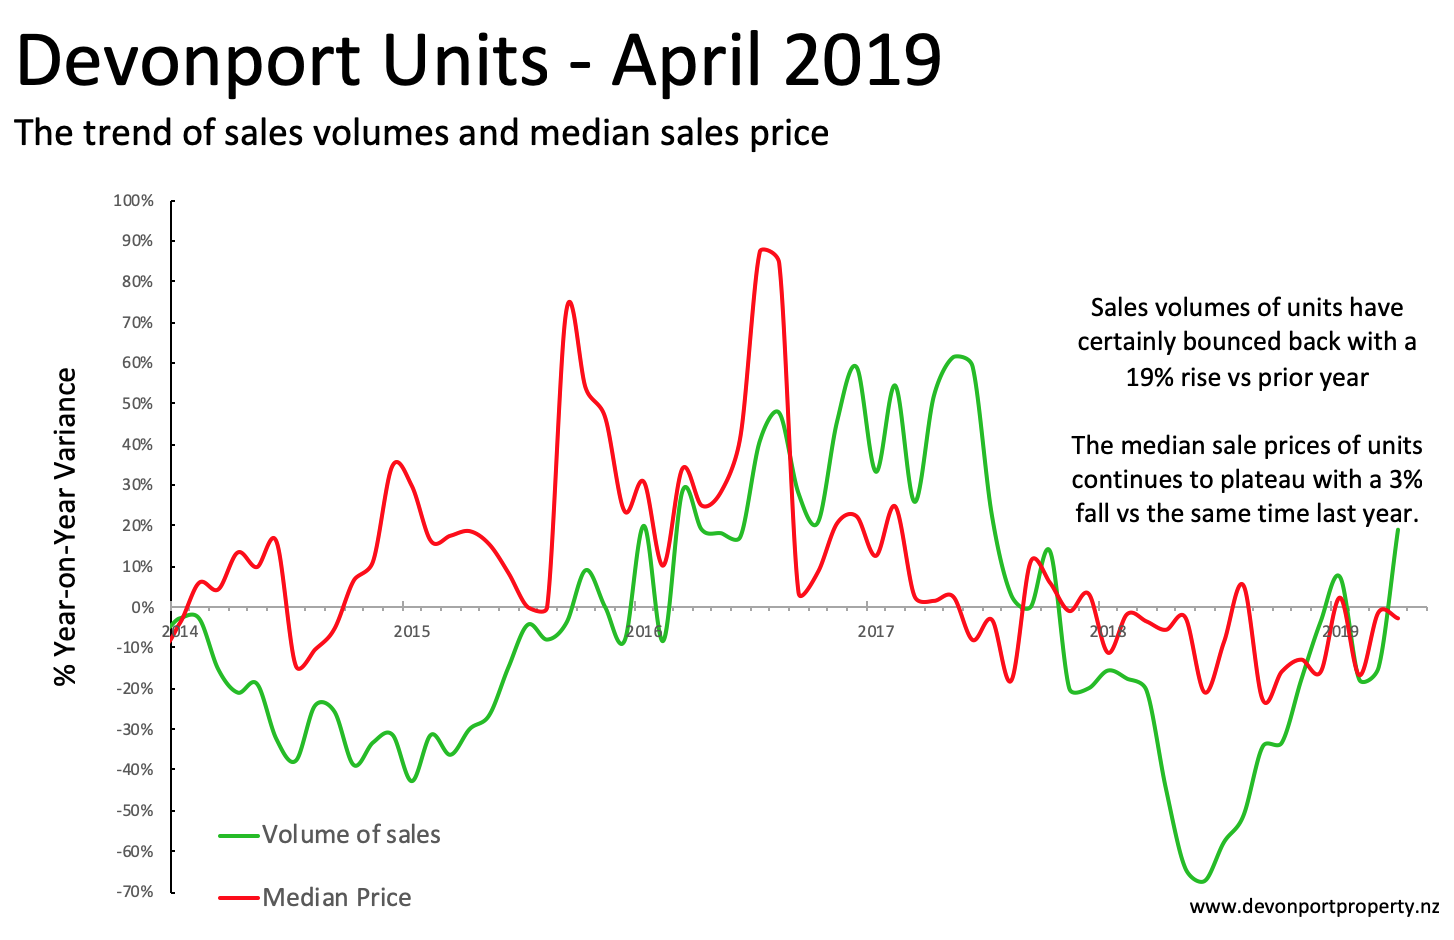 Devonport Property Report April 2019 Units variance vol and price 3M .png